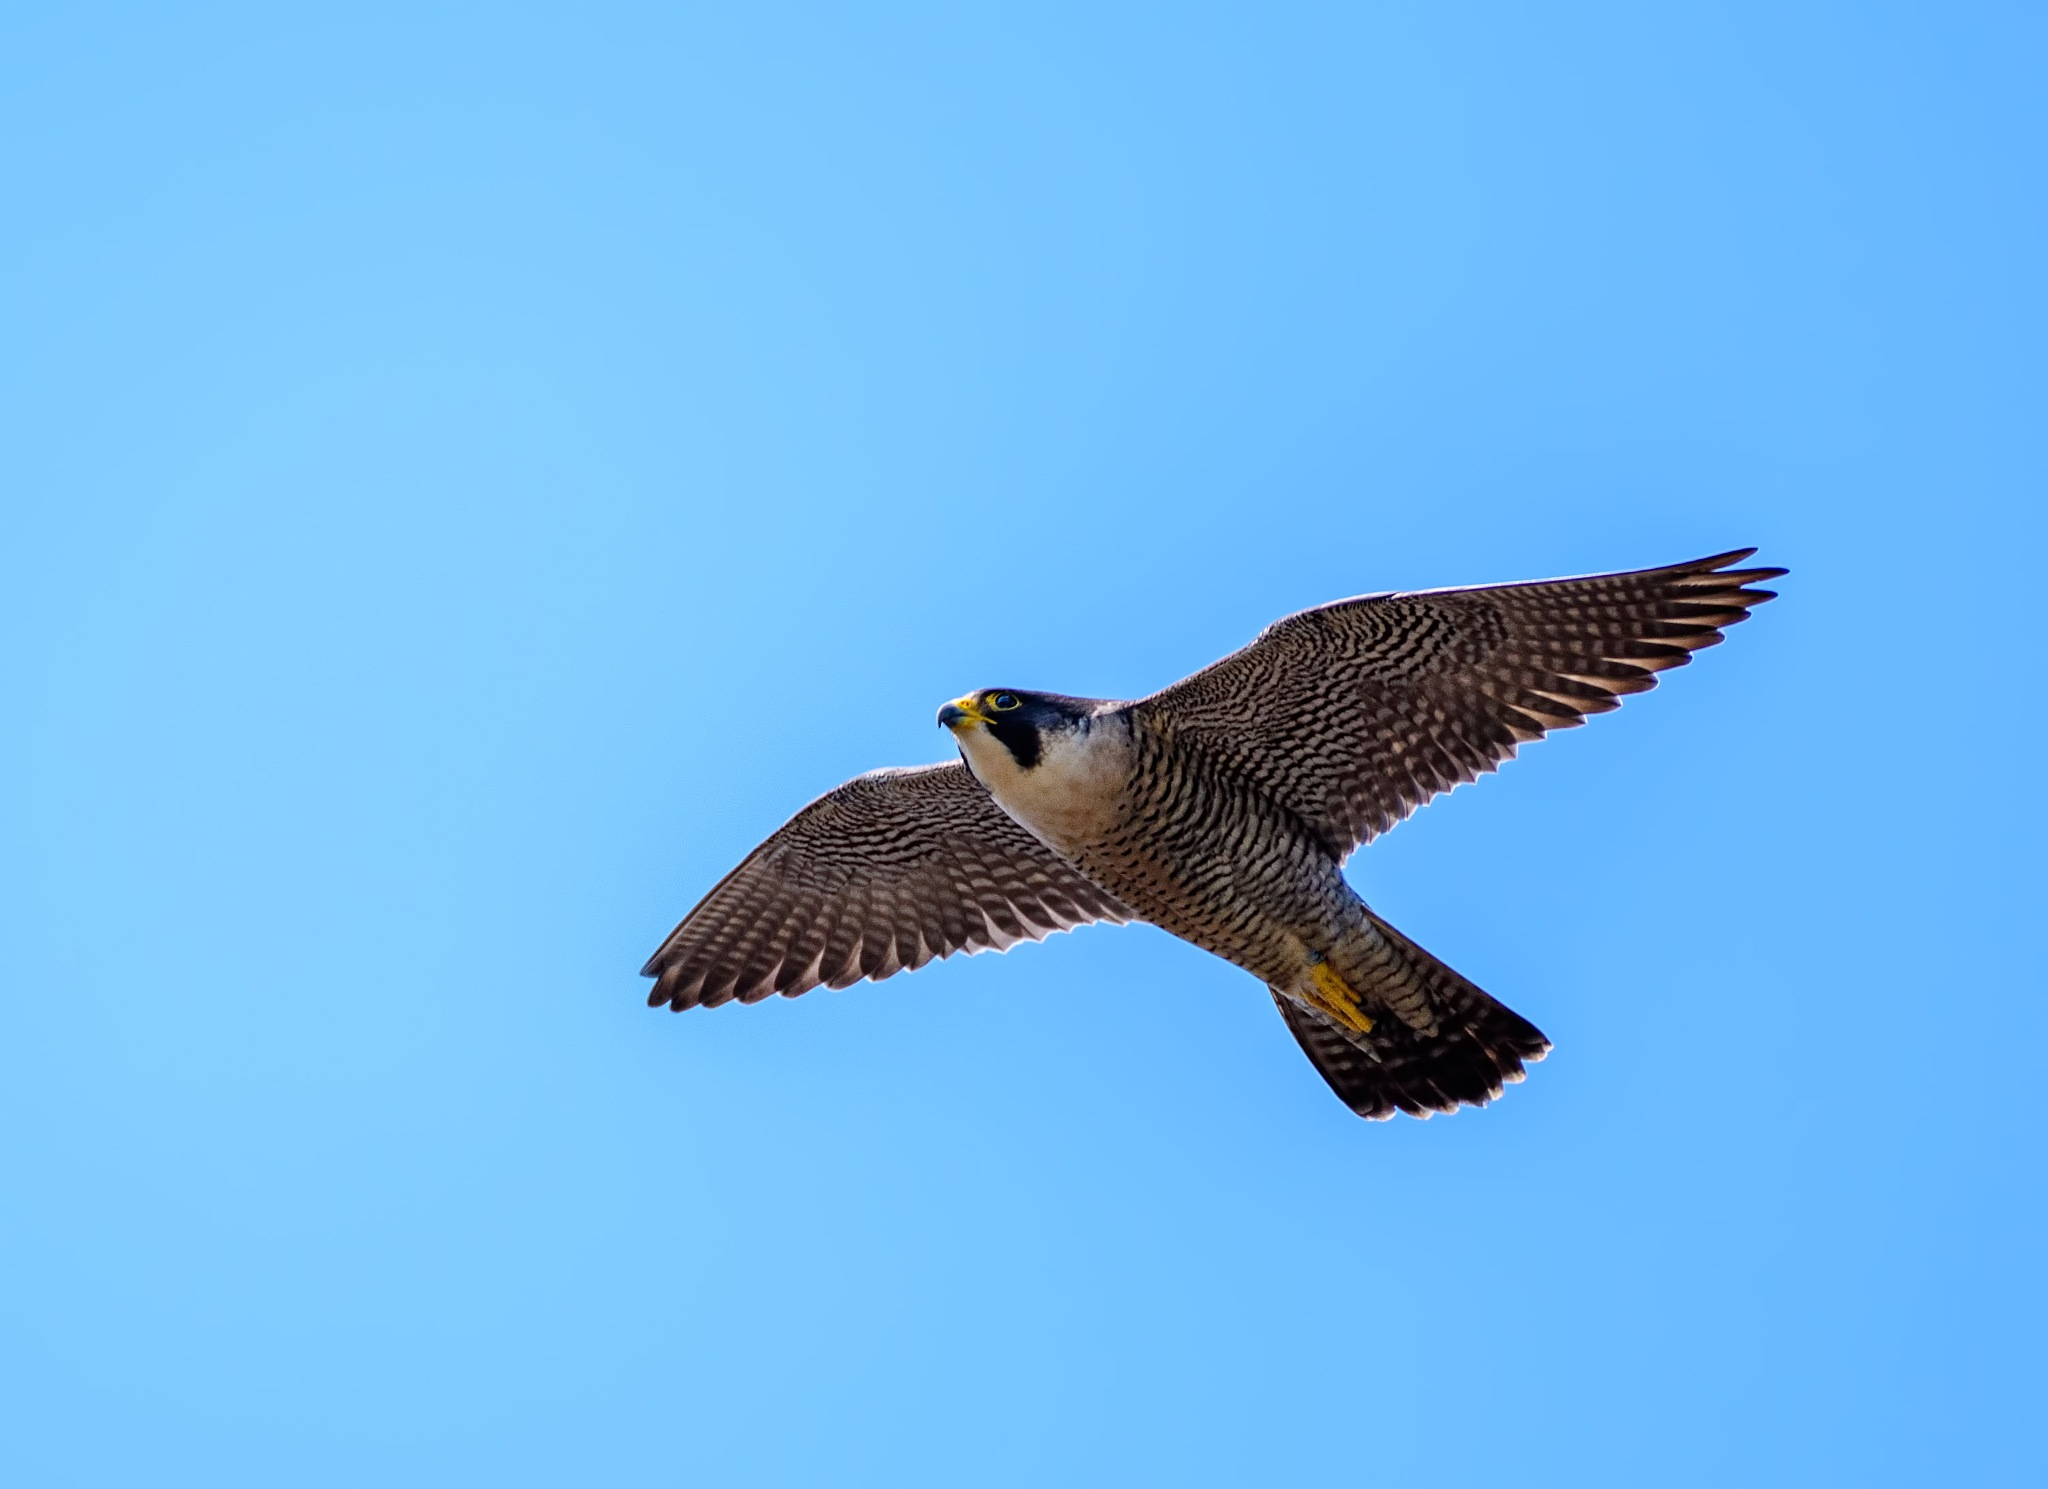 Peregrine Falcon flying near Strutt's North Mill in Belper today by Paul Collins